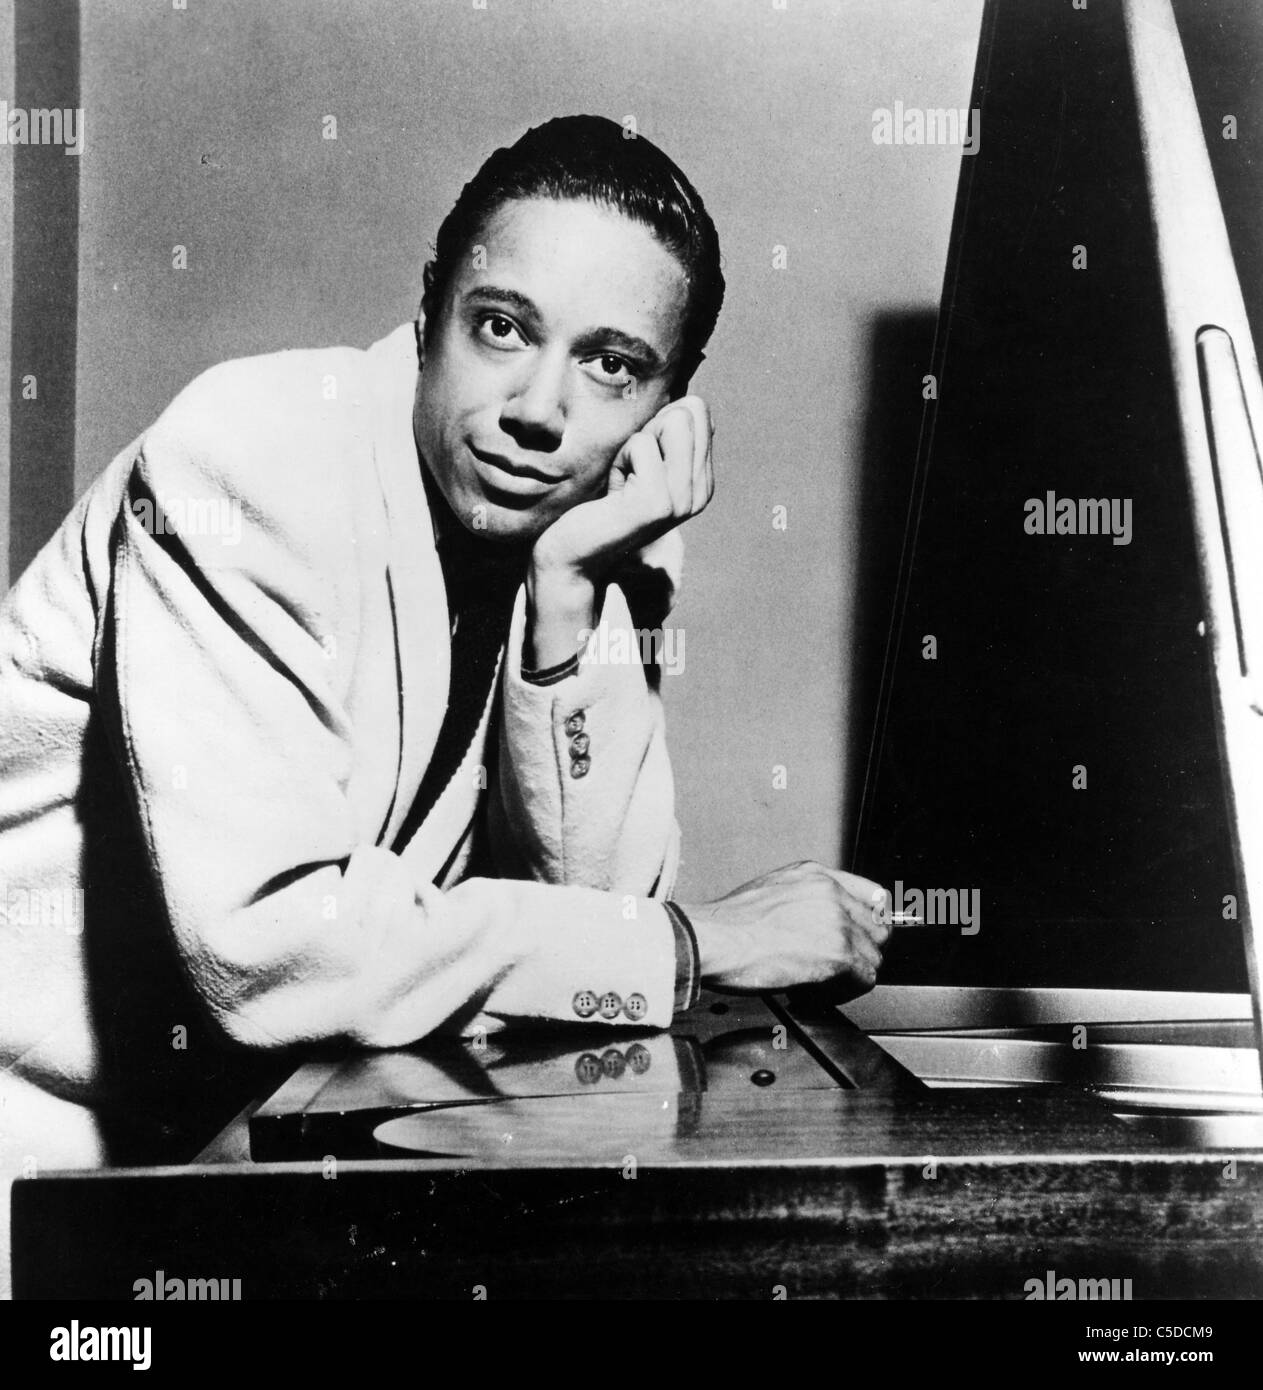 HORACE SILVER US jazz pianist and composer - Stock Image